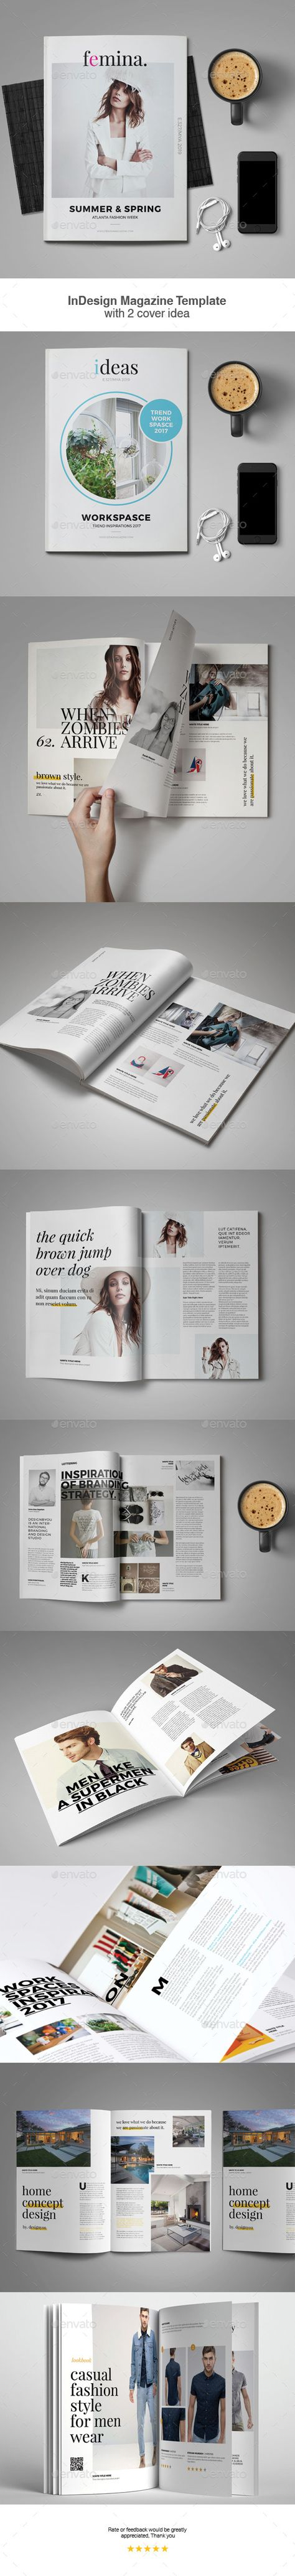 30 best Indesign Magazine Template images on Pinterest | Indesign ...